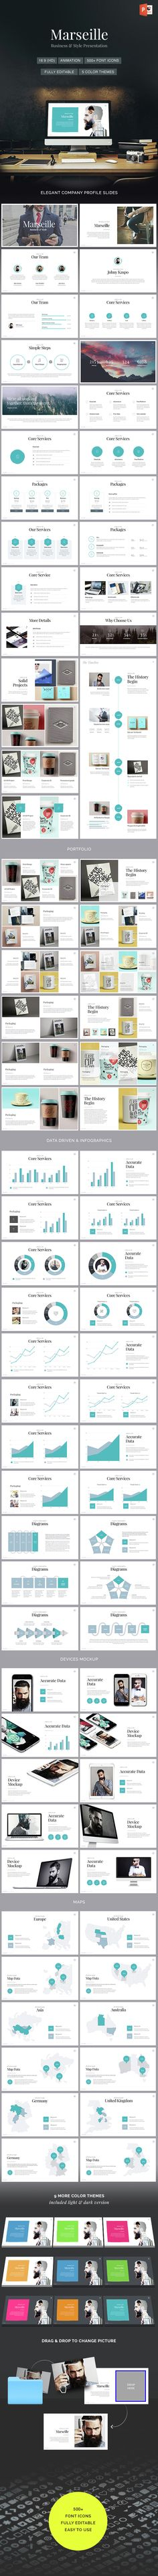 20 free powerpoint templates to spice up your presentation marseille elegant powerpoint template powerpoint templates toneelgroepblik